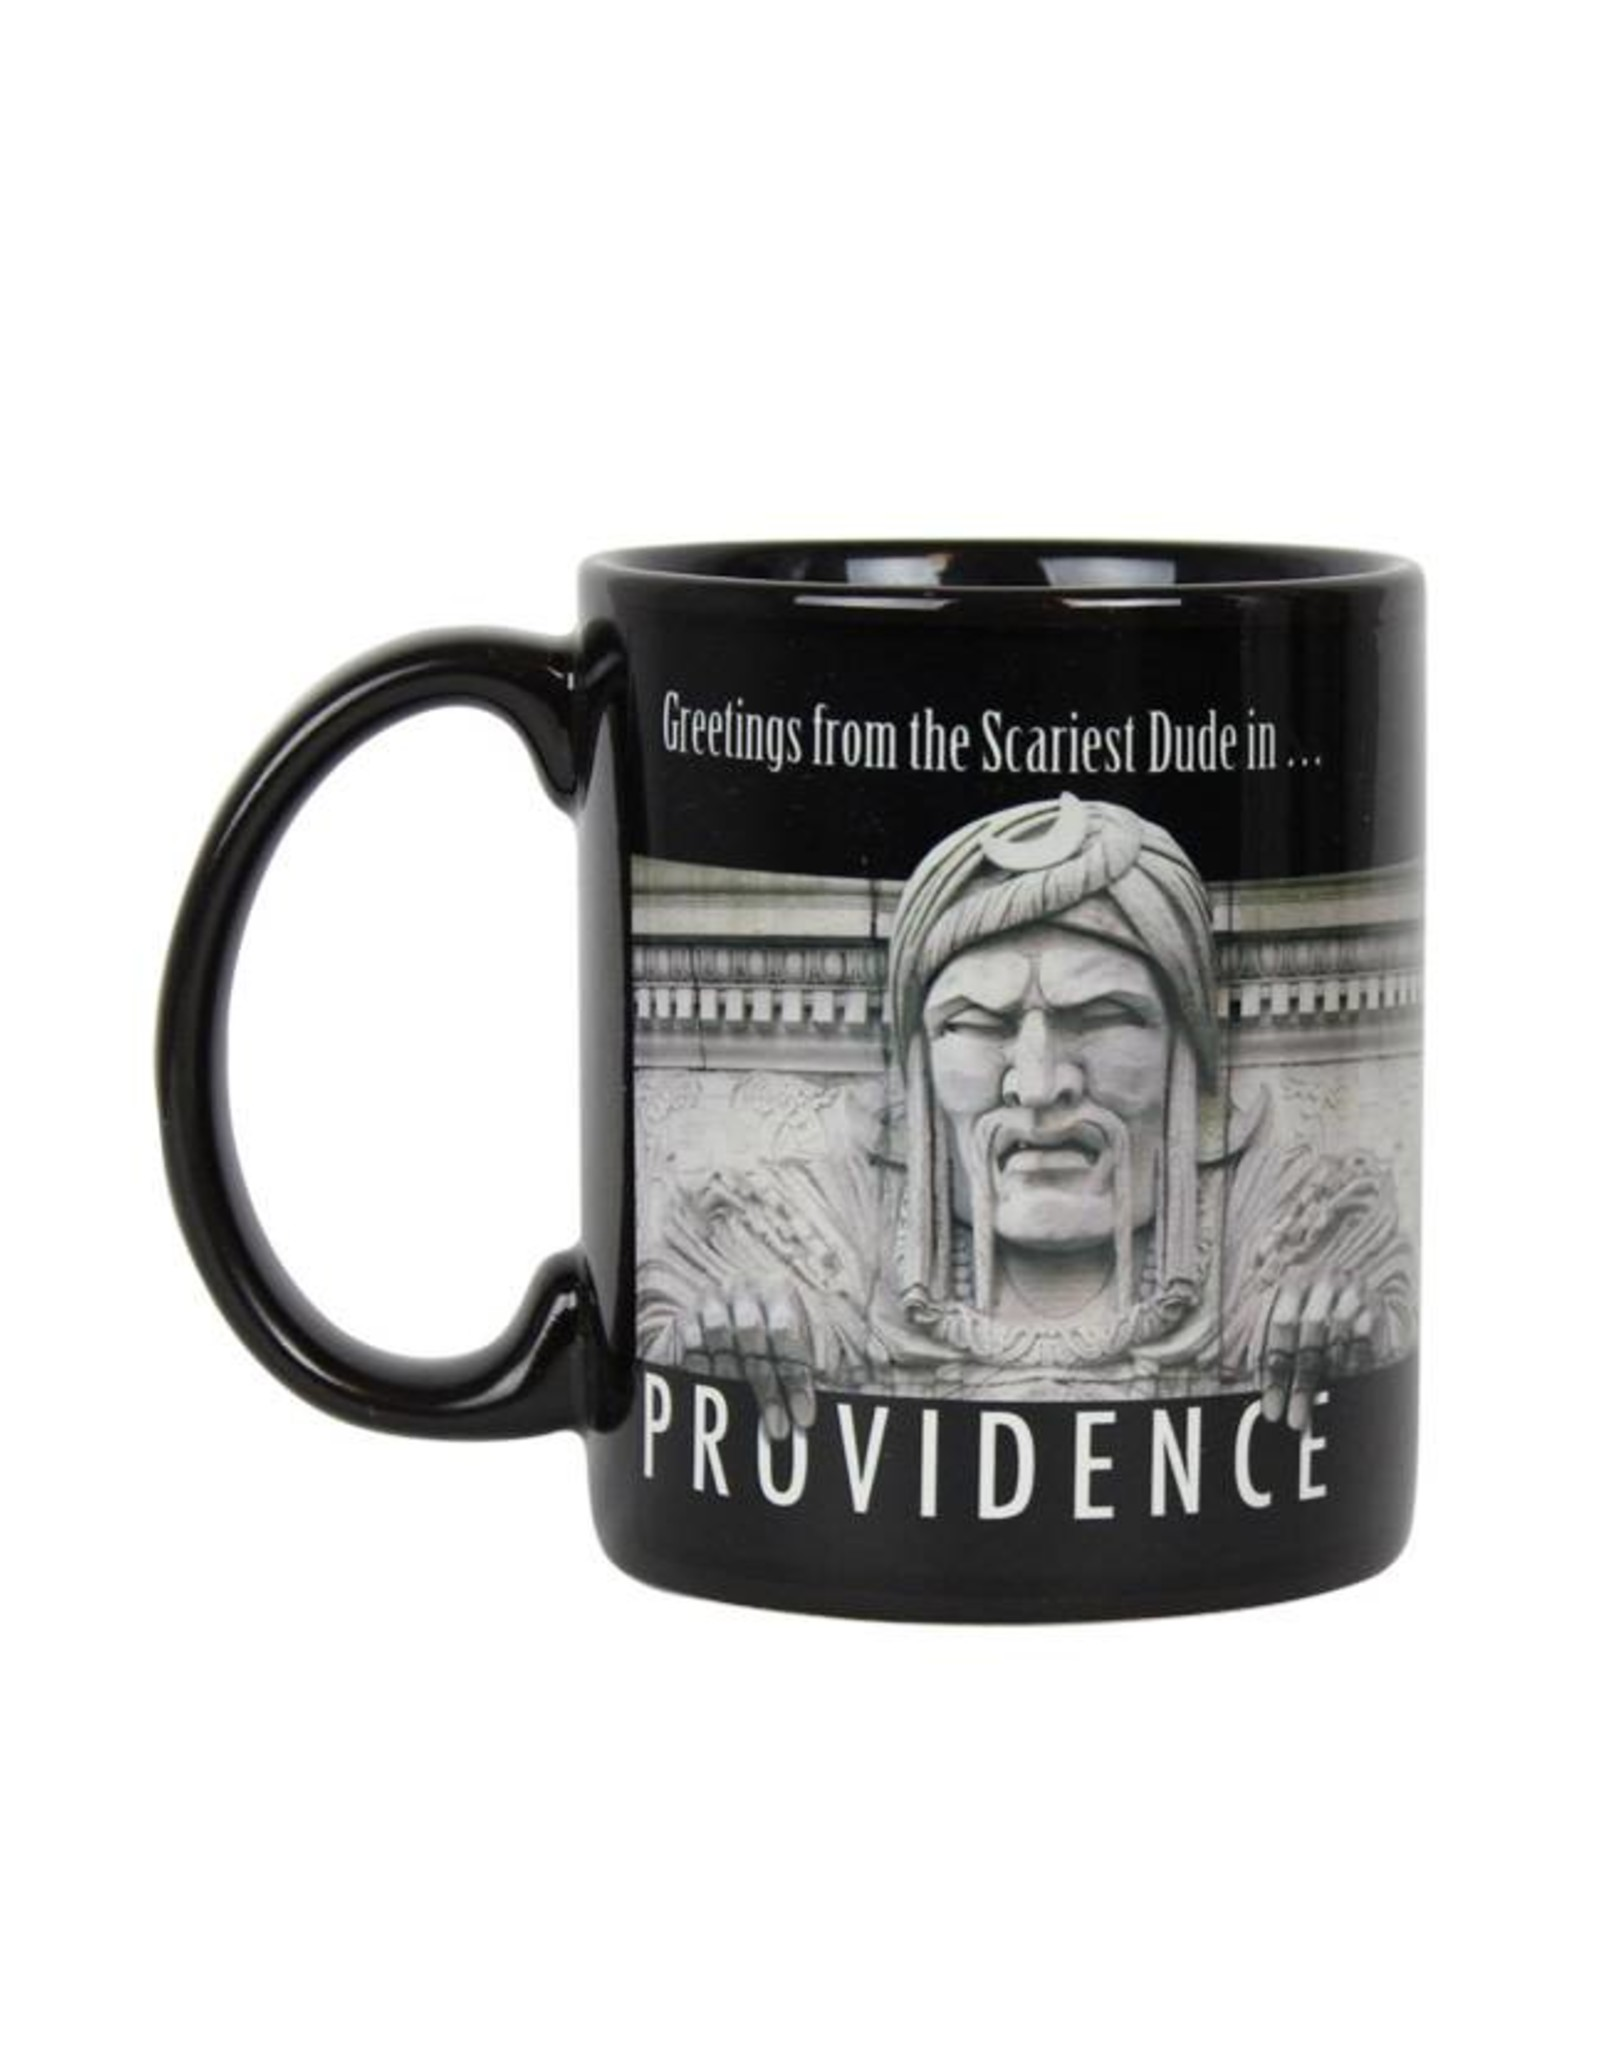 Scariest Dude in Providence Mug